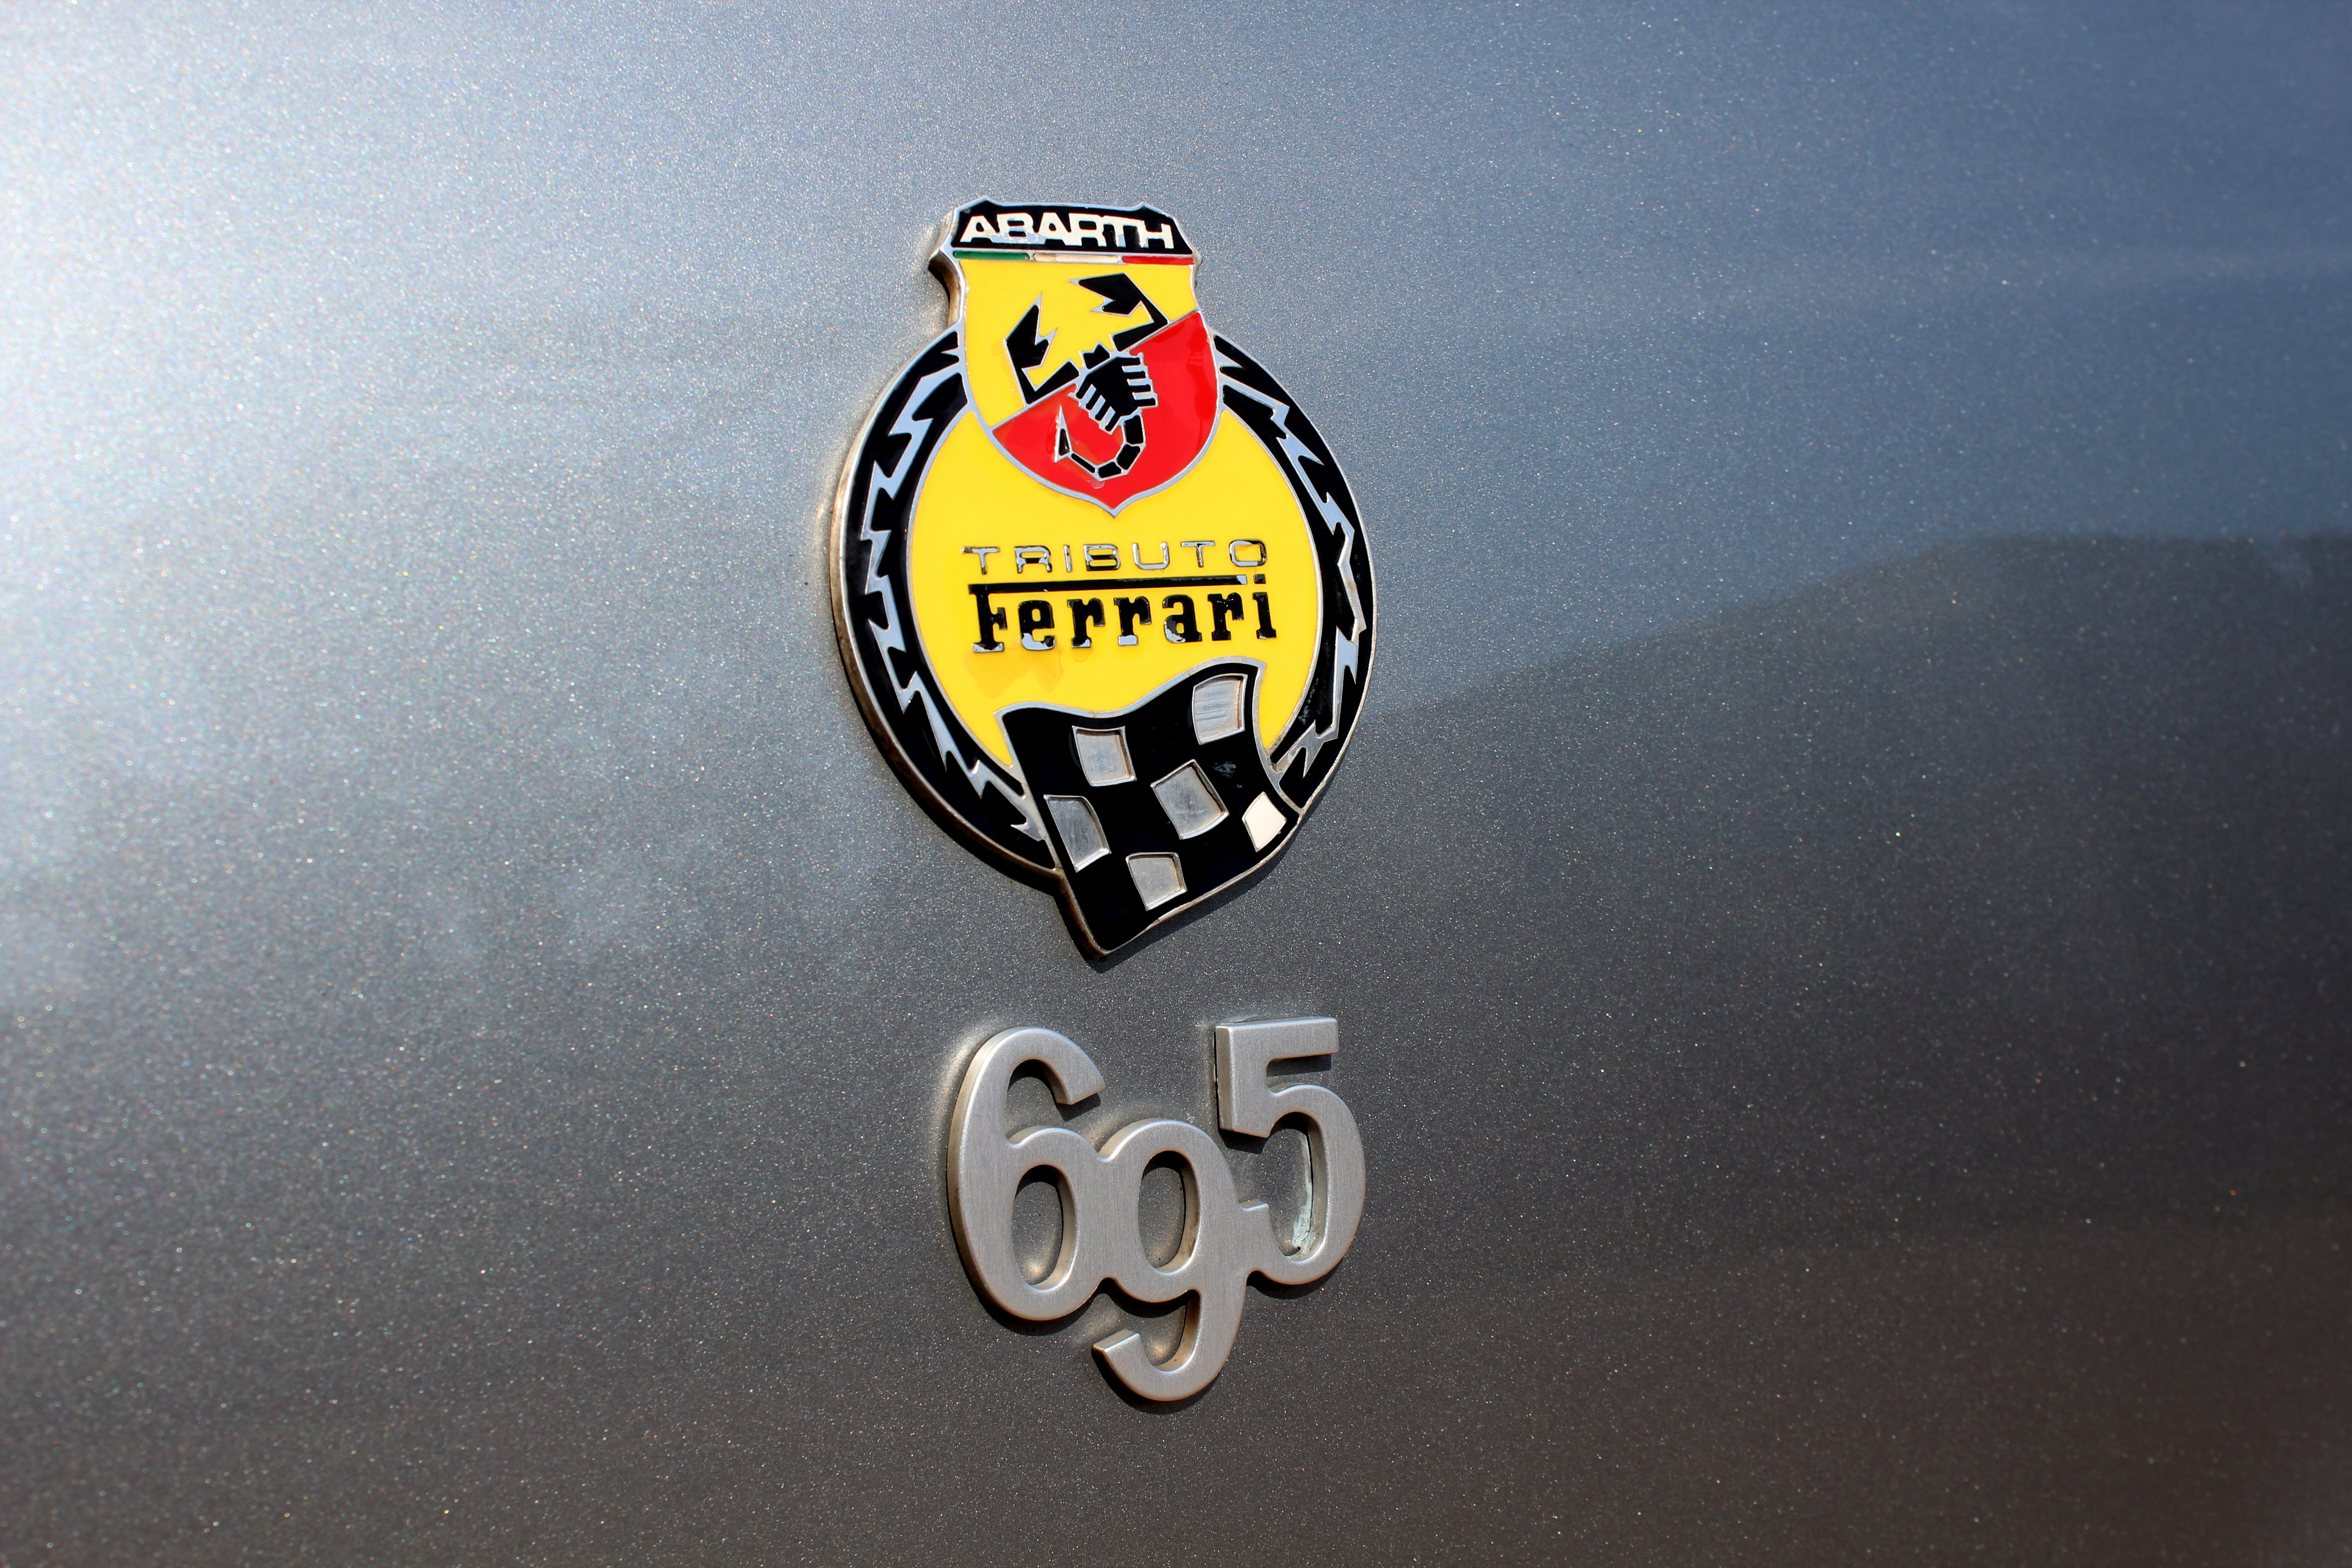 Abarth 695 Tributo Ferrari 1of99